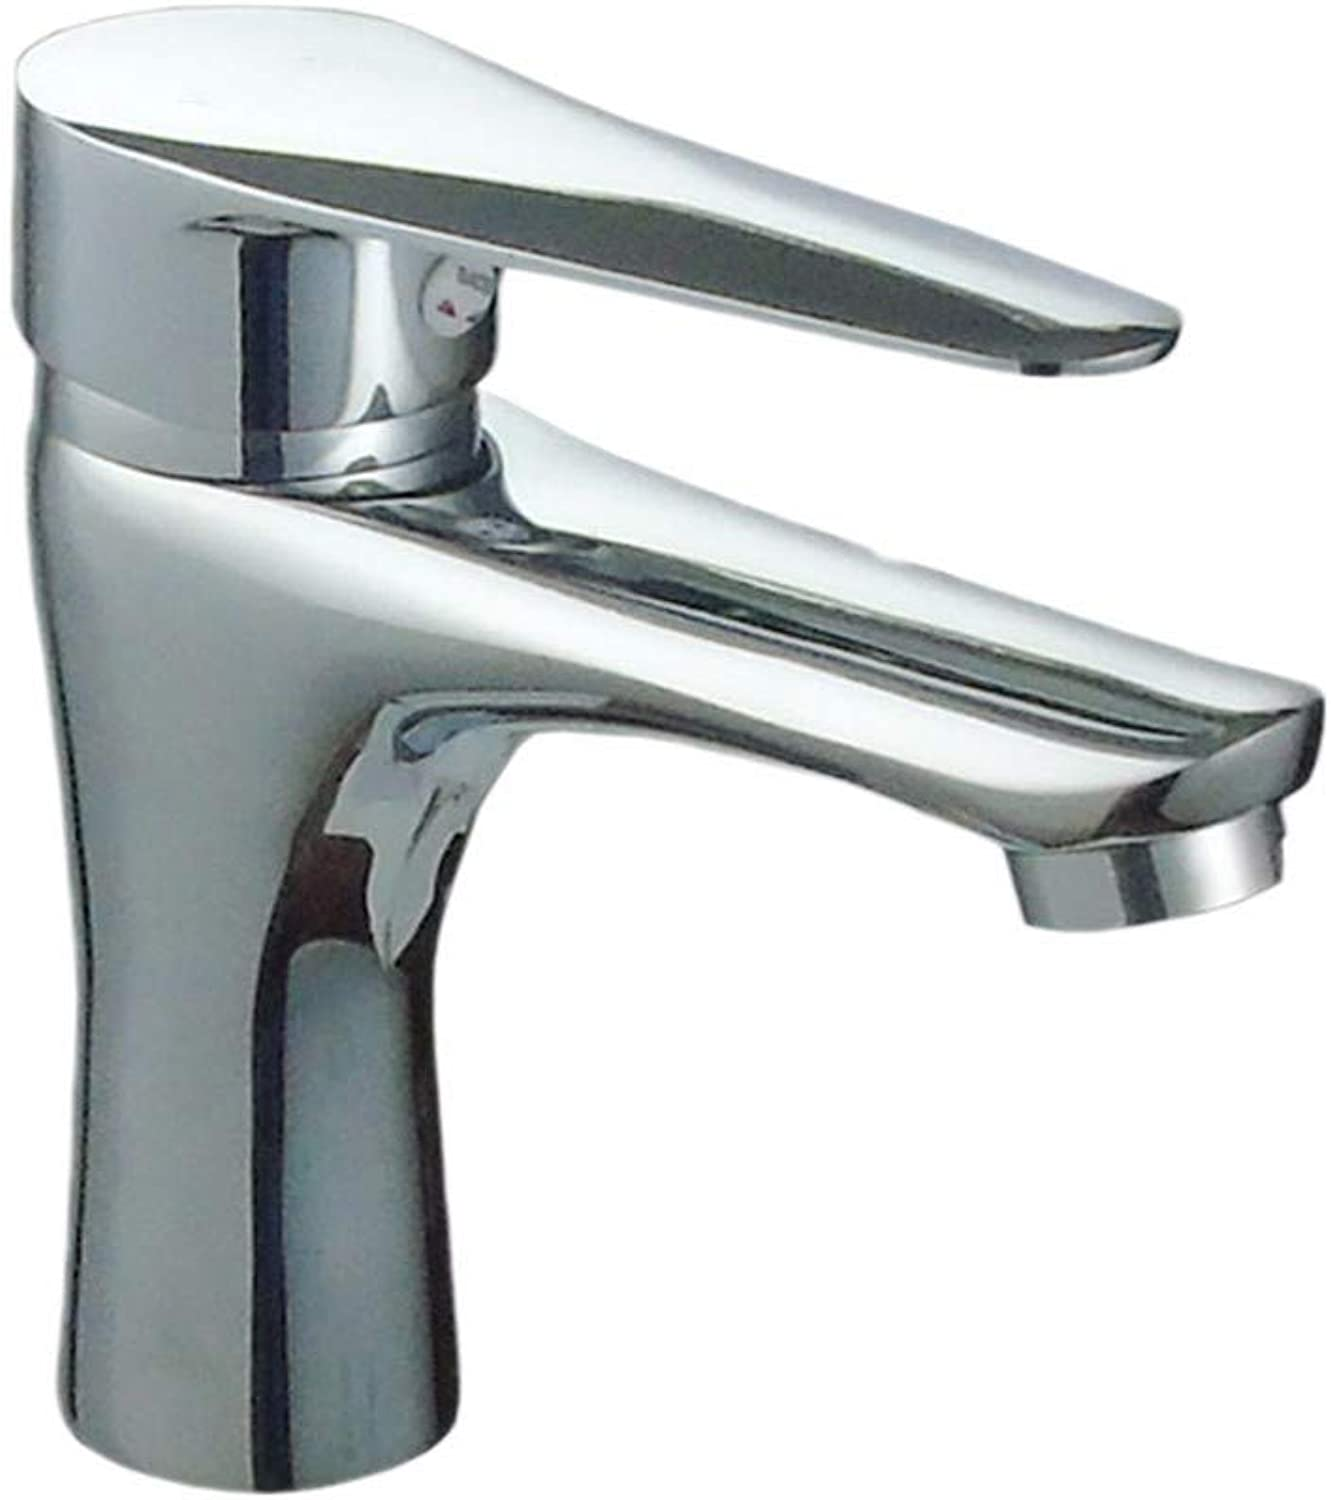 KaO0YaN-Tap Bathroom Cabinet Faucet washbasin hot and Cold Water Faucet